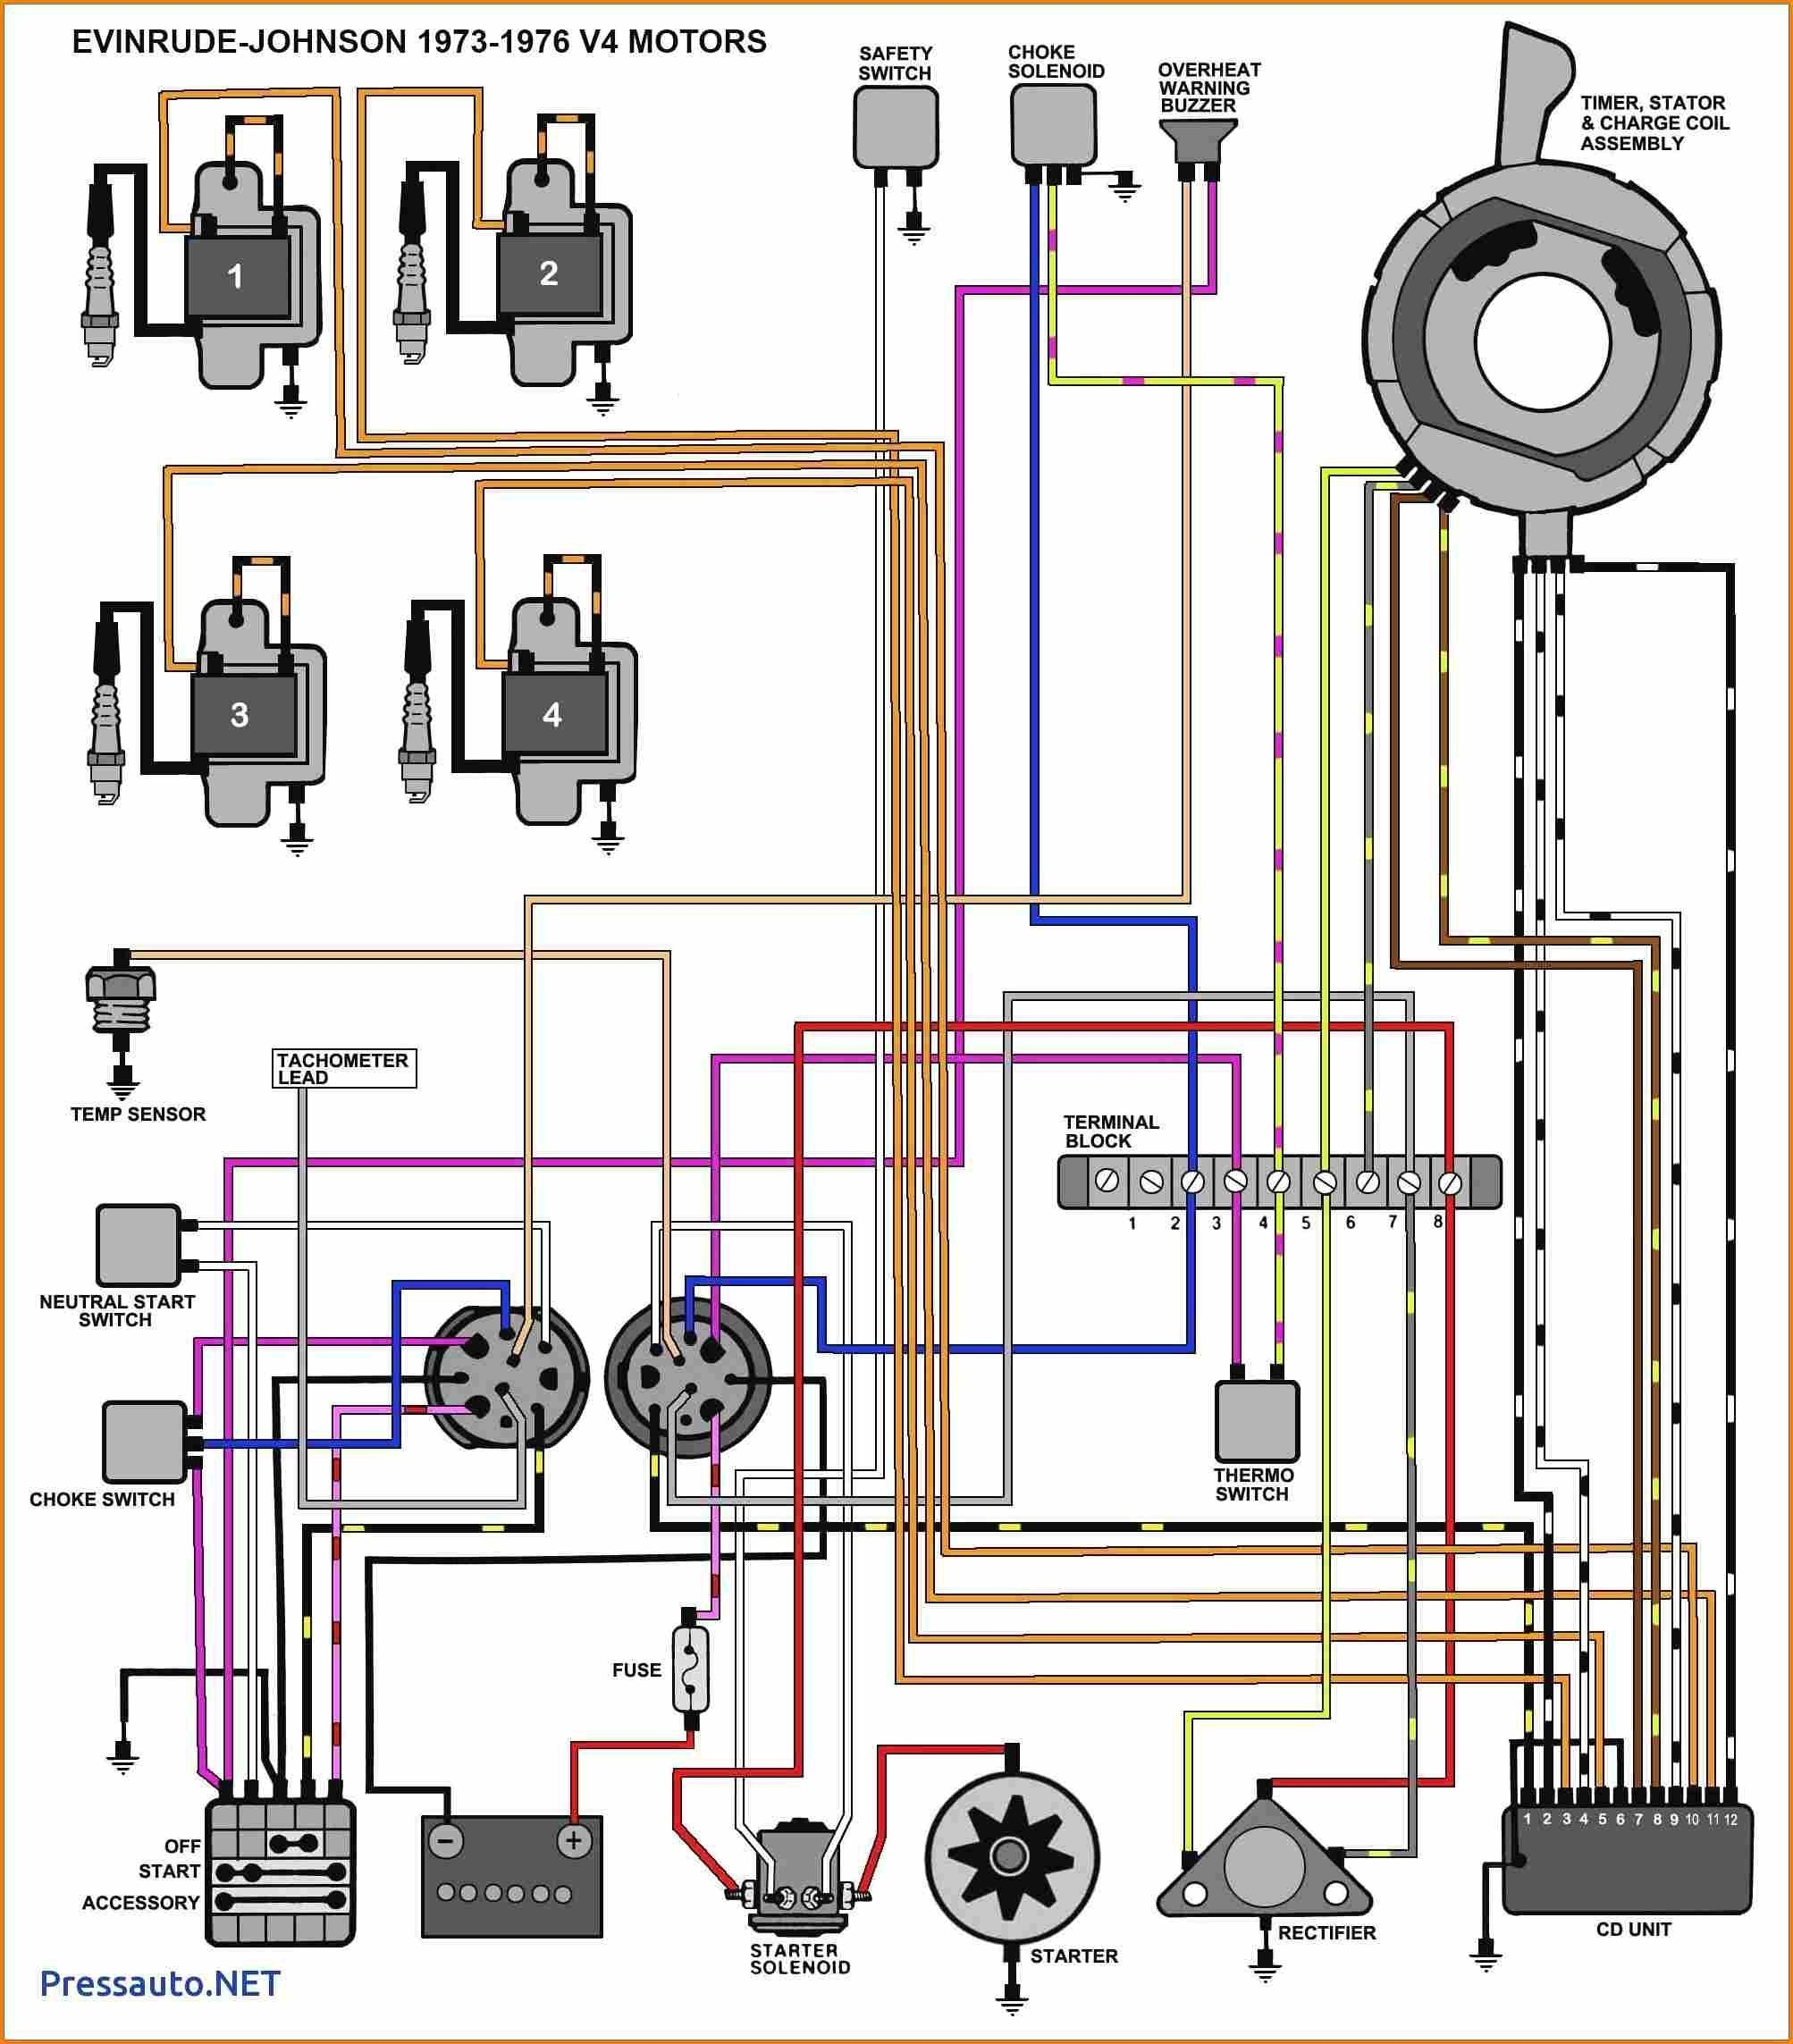 mariner ignition switch wiring diagram mercury outboard wiring diagram schematic | free wiring ... 3520 john deere ignition switch wiring diagram